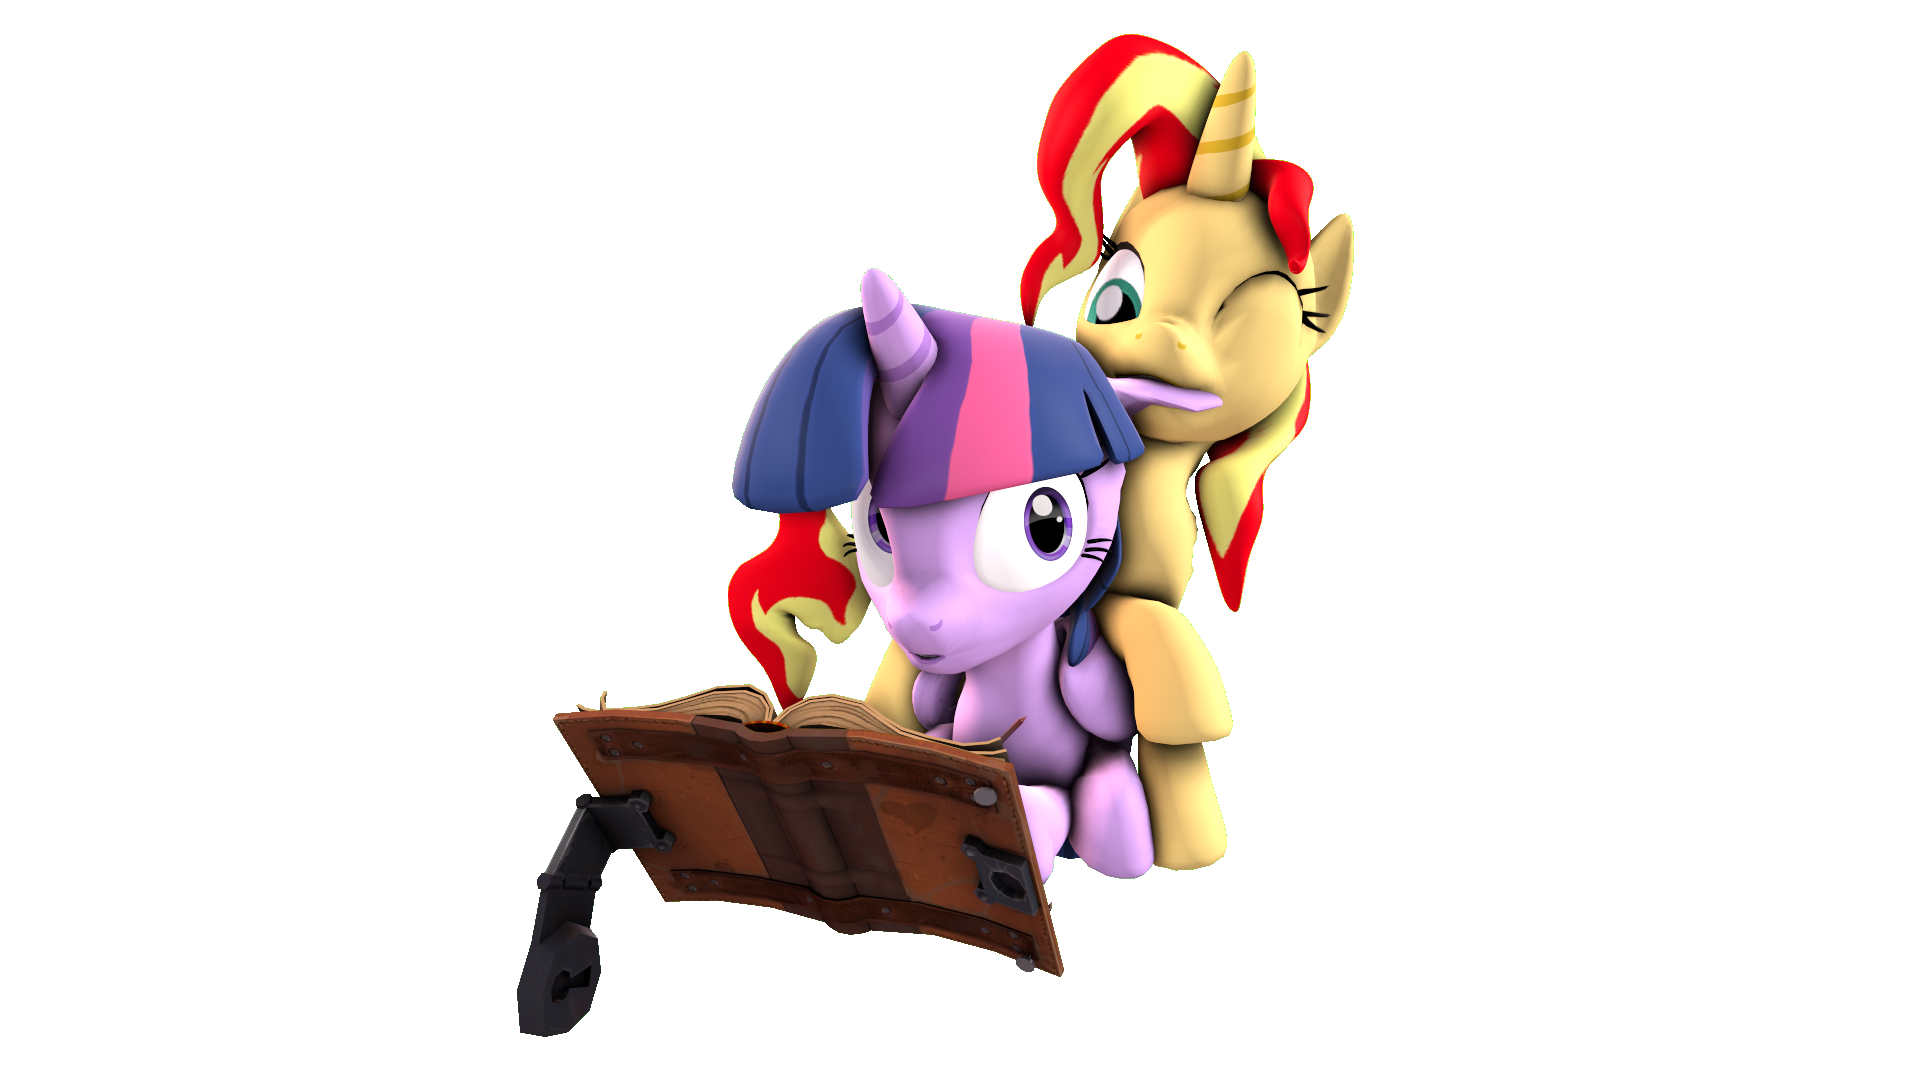 _sfm__sudden_cute_distraction__by_jarg19